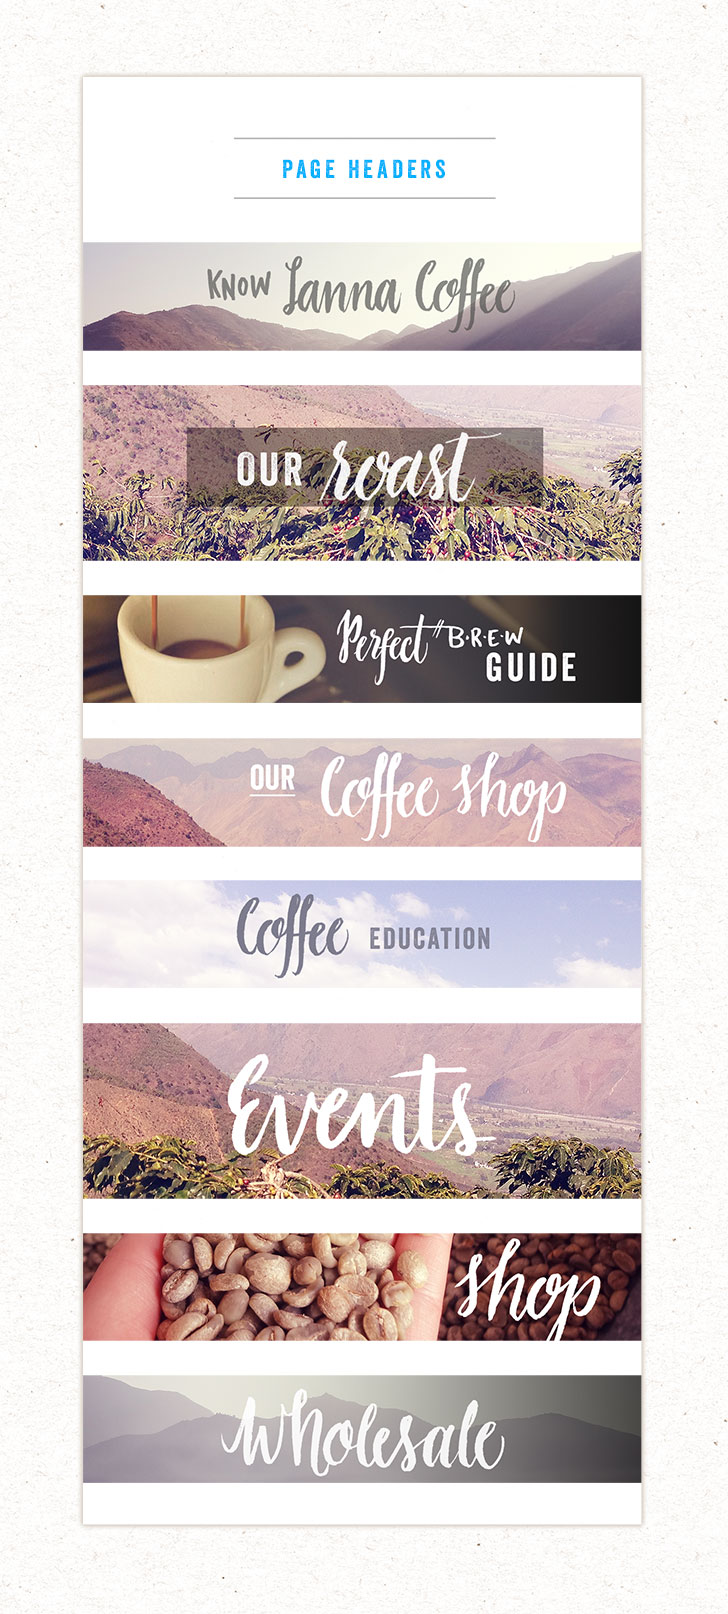 Public Marking Lanna Coffee Website Headers